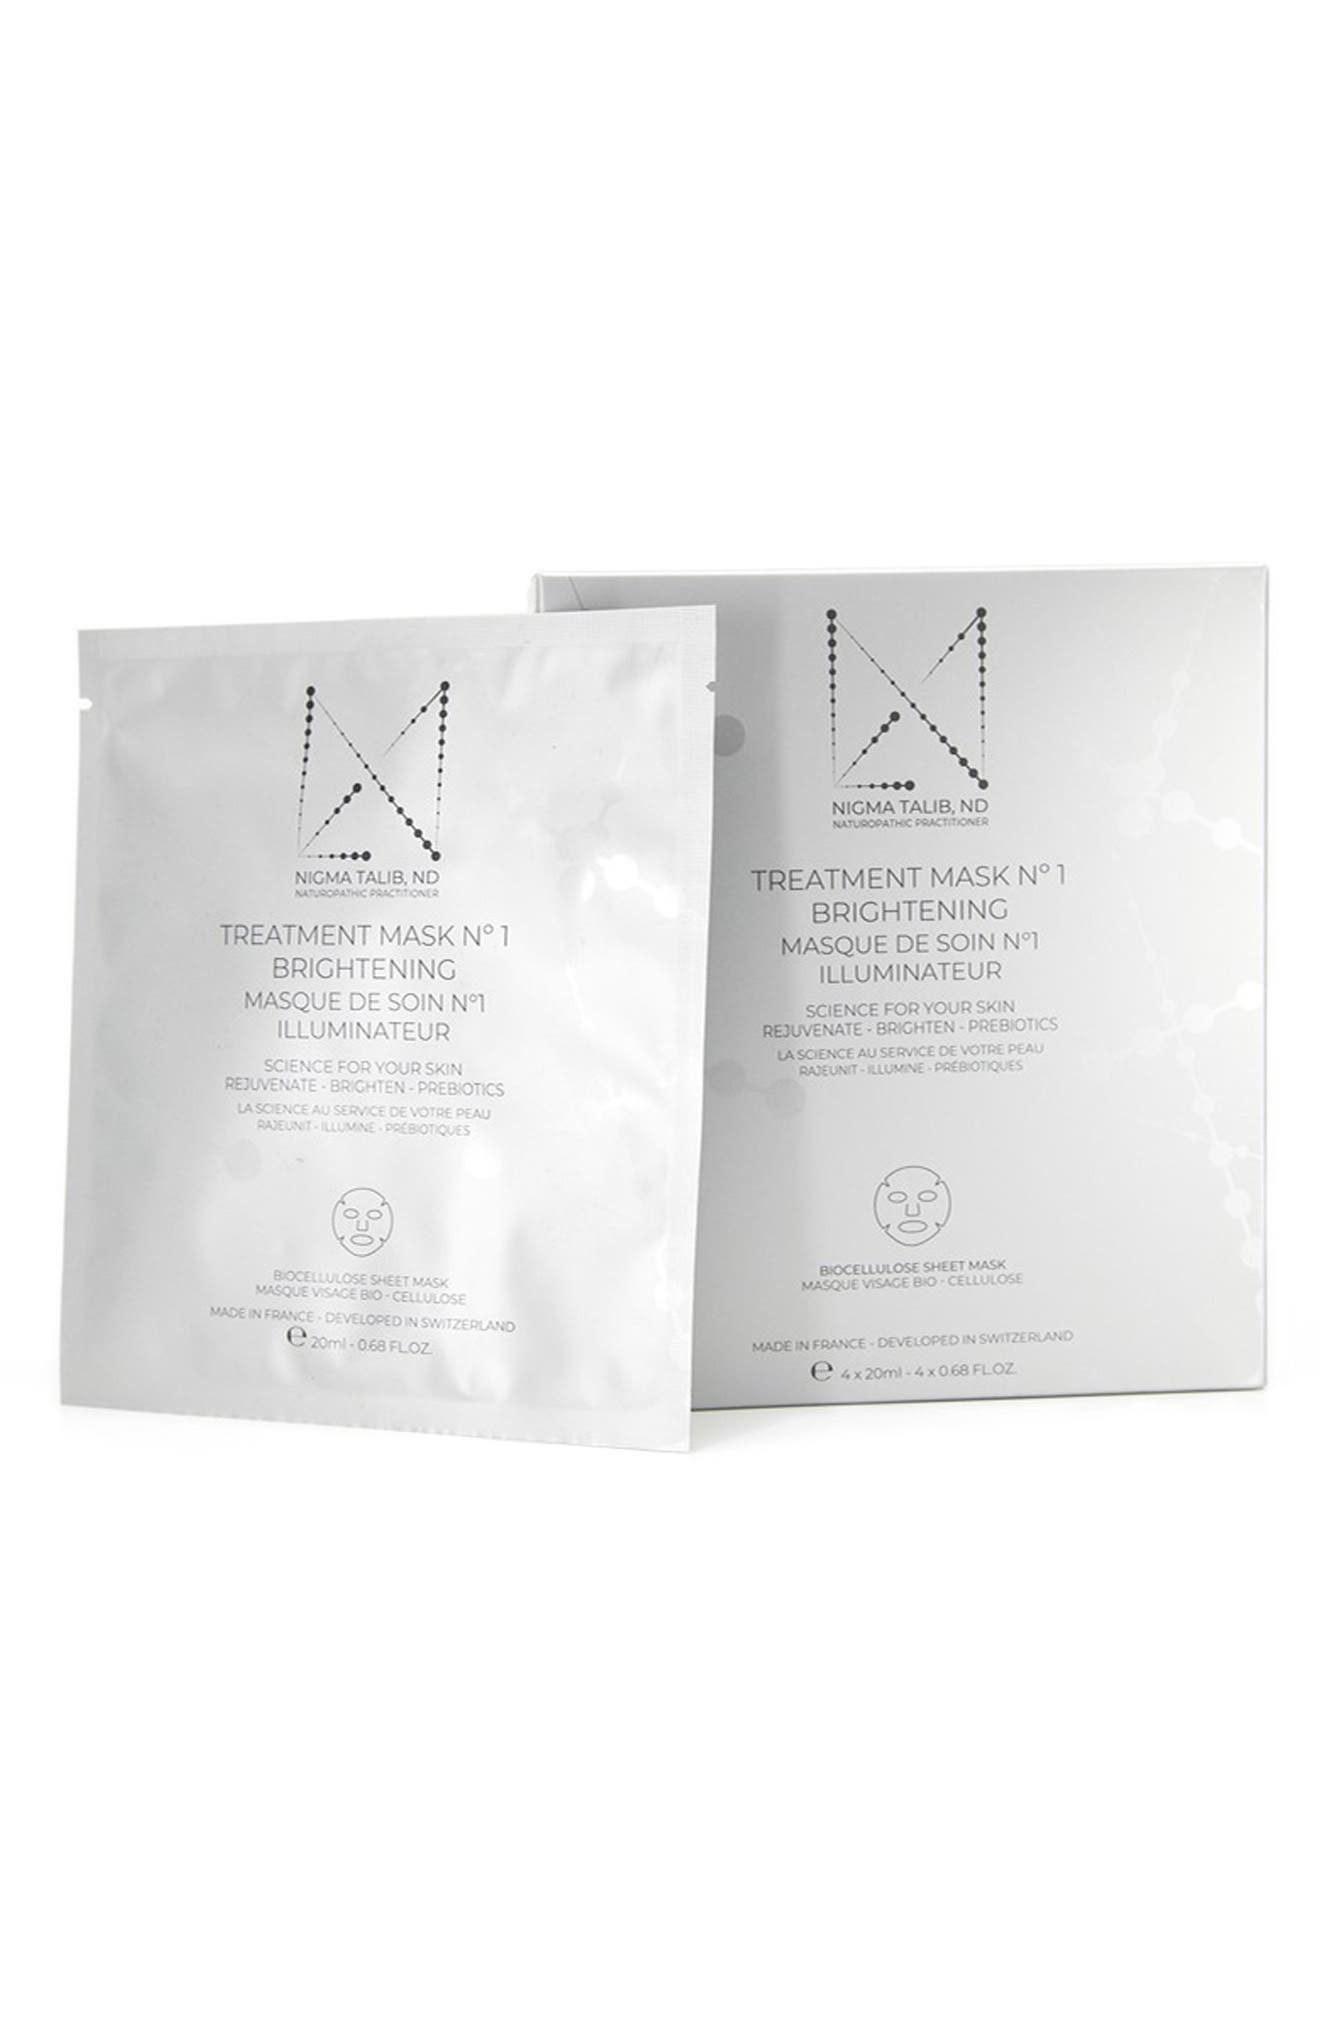 Treatment Mask No.1 Brightening Face Mask